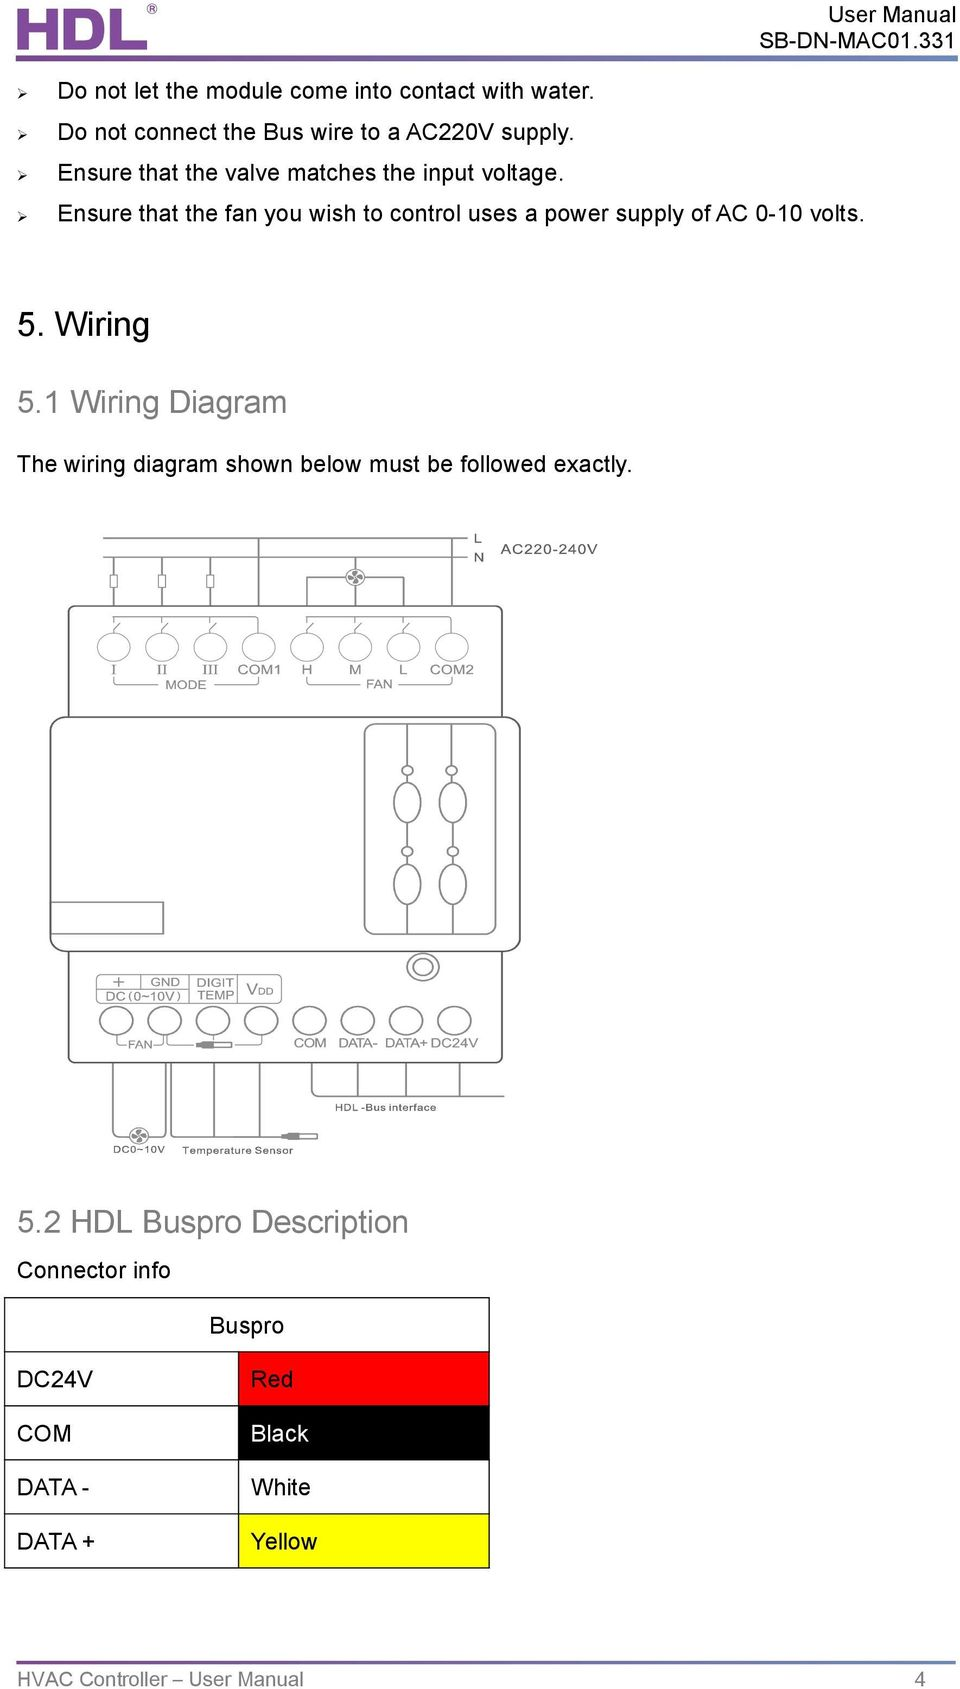 User Manual Air Conditioner Controller Sb Dn Hvac Mac01331 Pdf Ac Control Wiring Ensure That The Fan You Wish To Uses A Power Supply Of 0